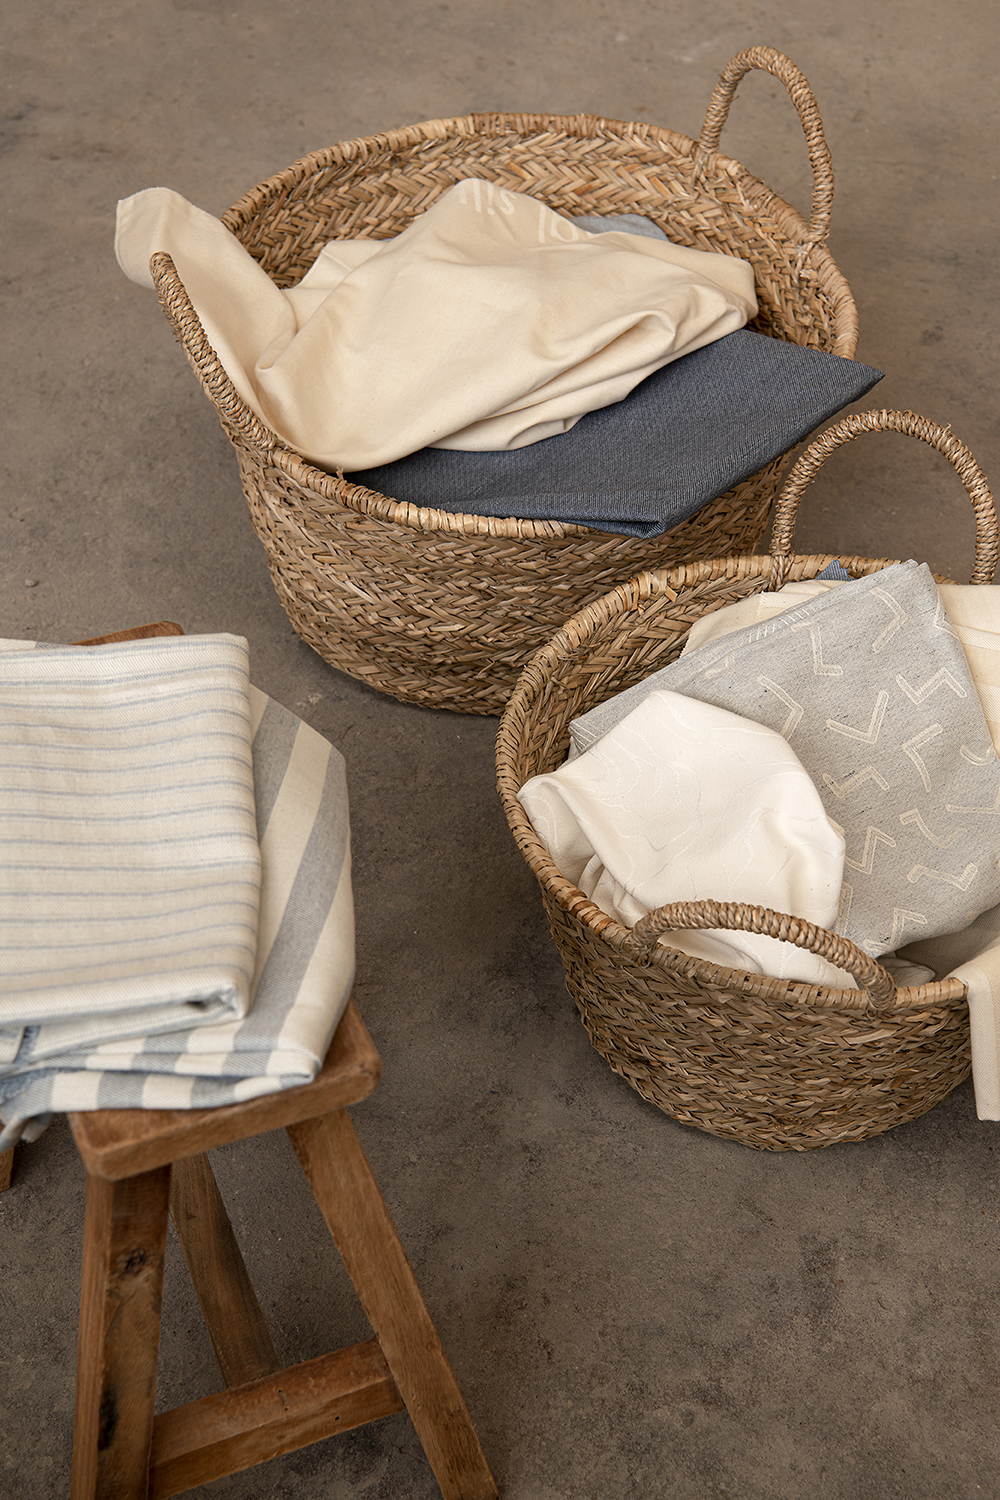 Wicker storage baskets to store things you frequently use